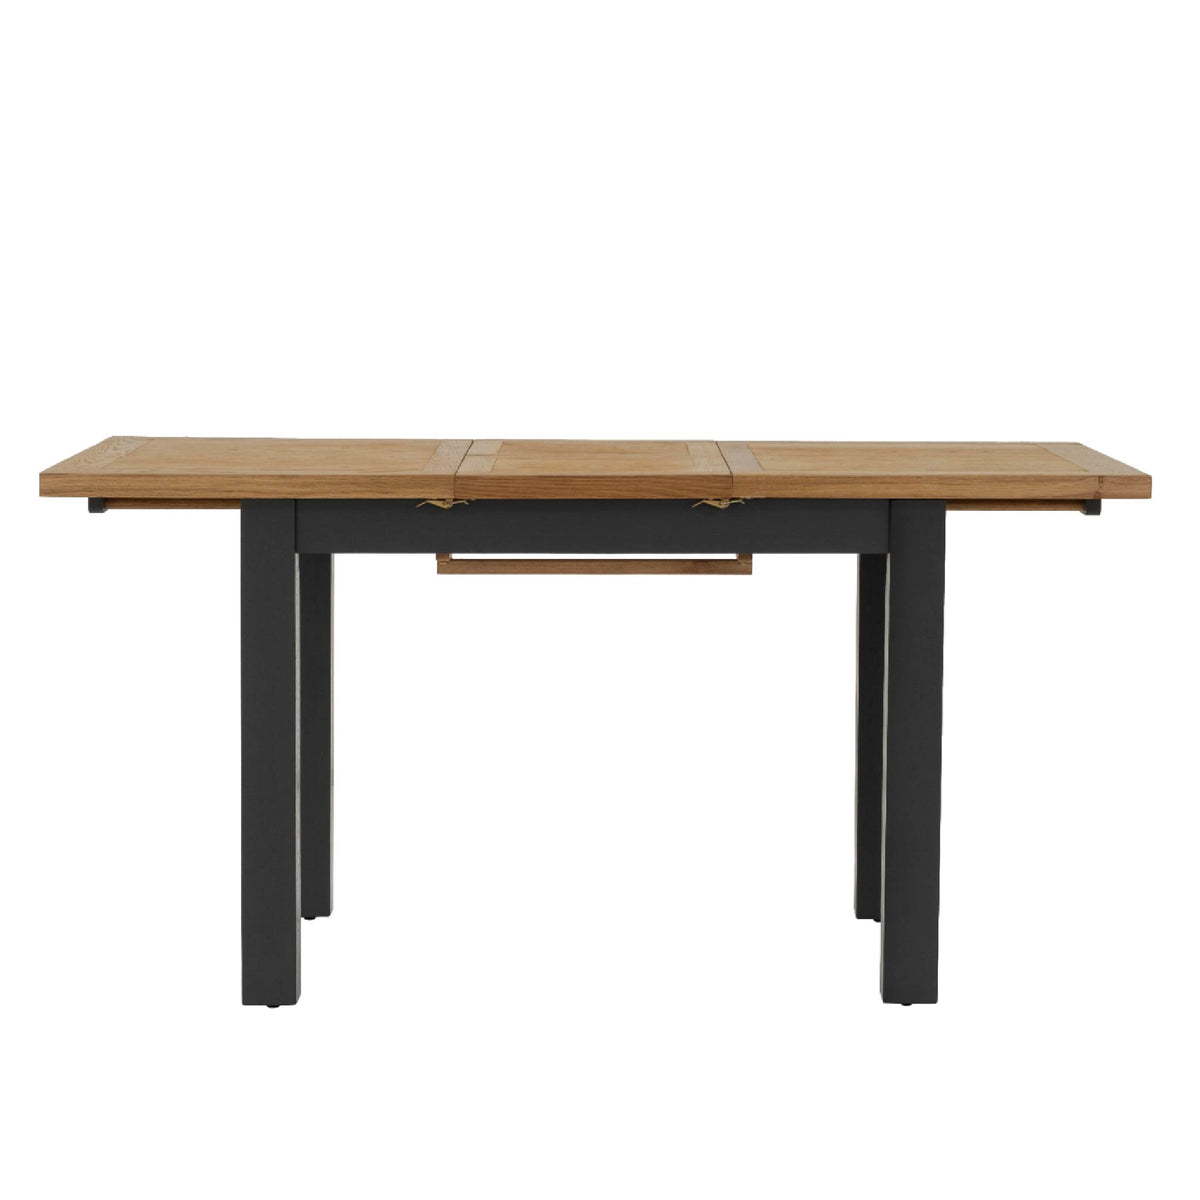 Charlestown Black Extendable Dining Table - Extended Length View